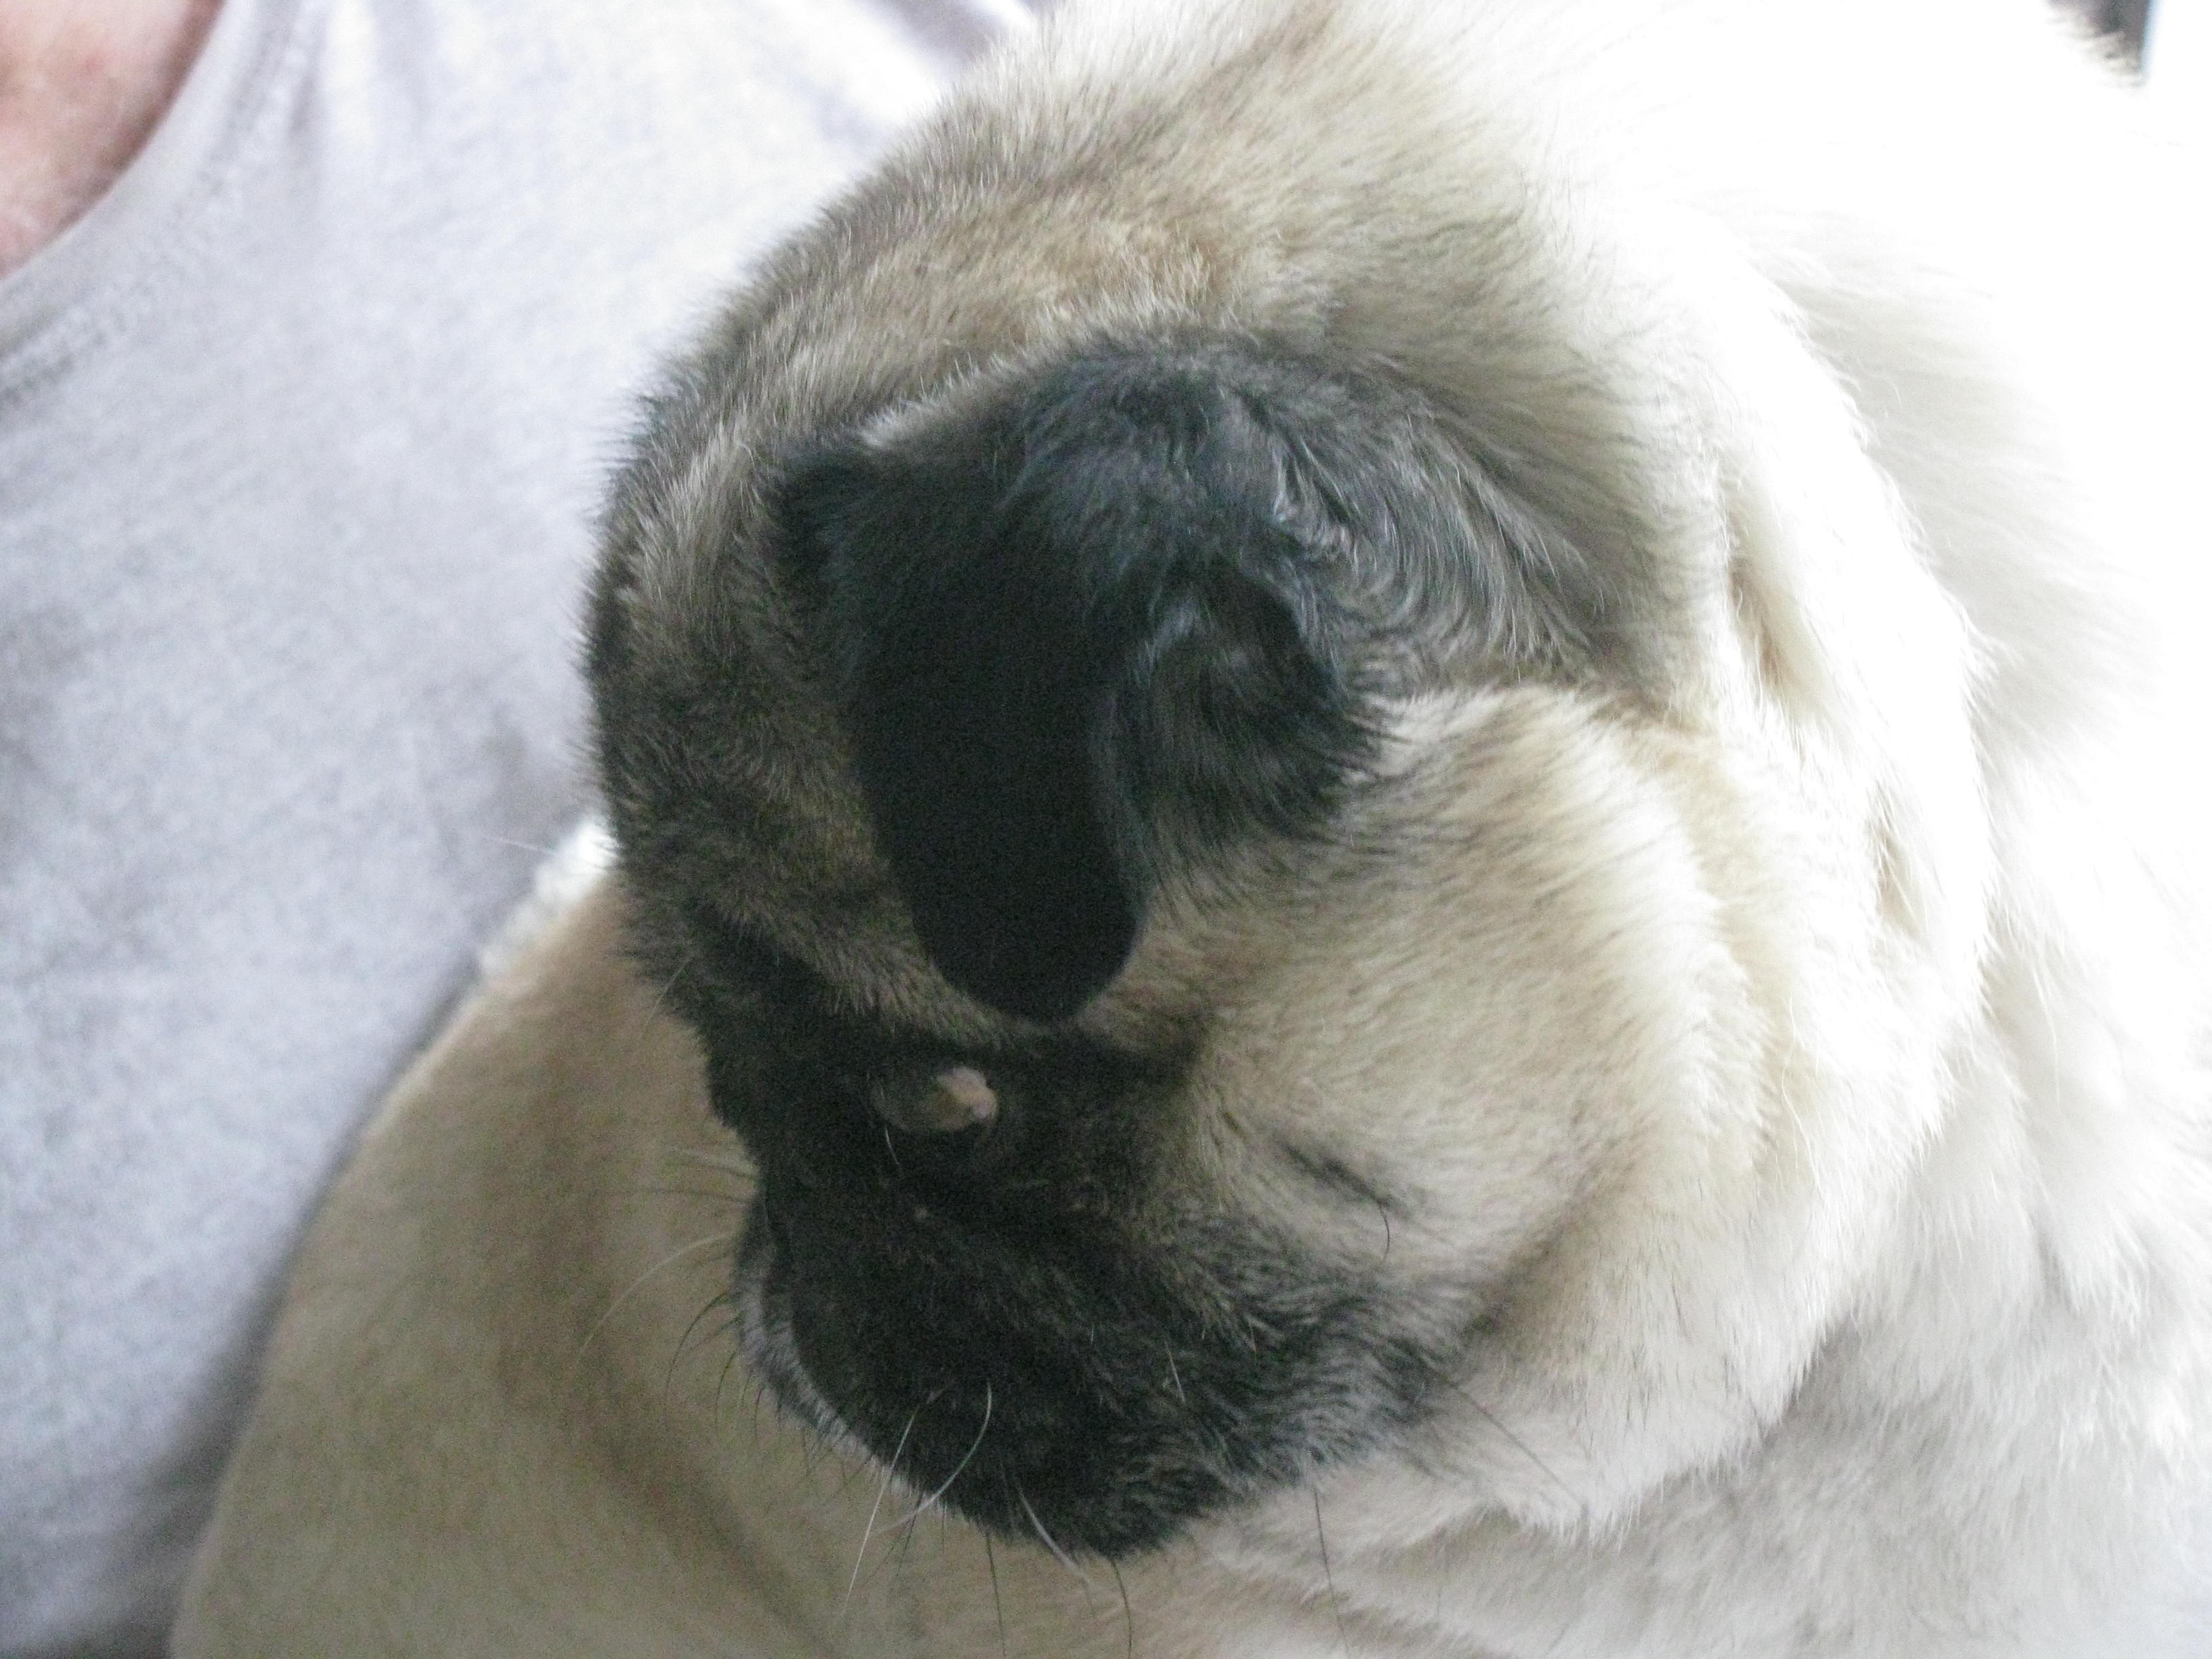 I just happen to love this shot and Grandma says I look like an angel. No hint of health issues on this pug's face!